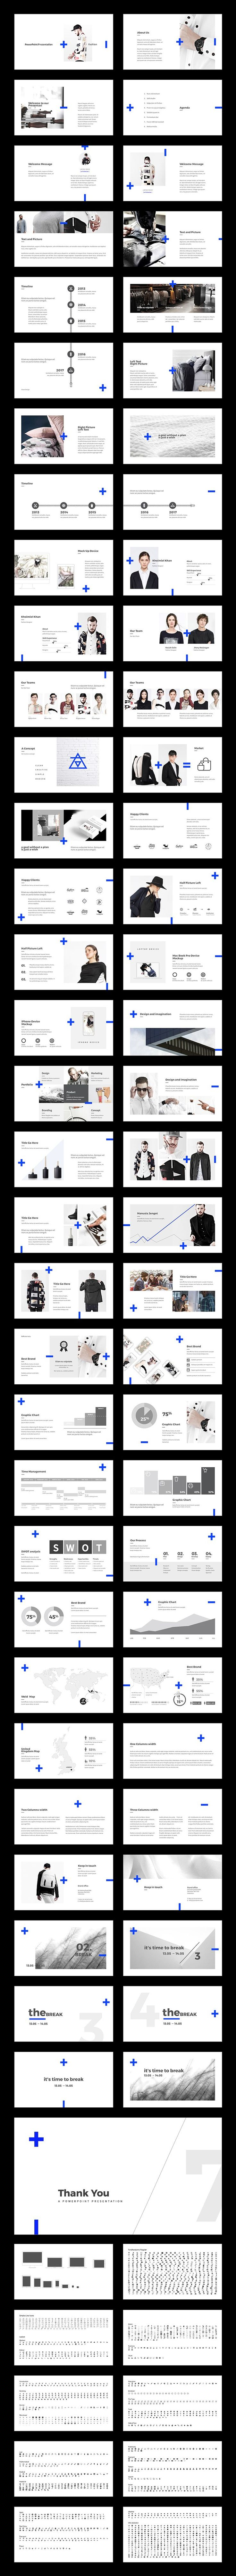 Fashion Minimal PowerPoint by BOXKAYU on @creativemarket